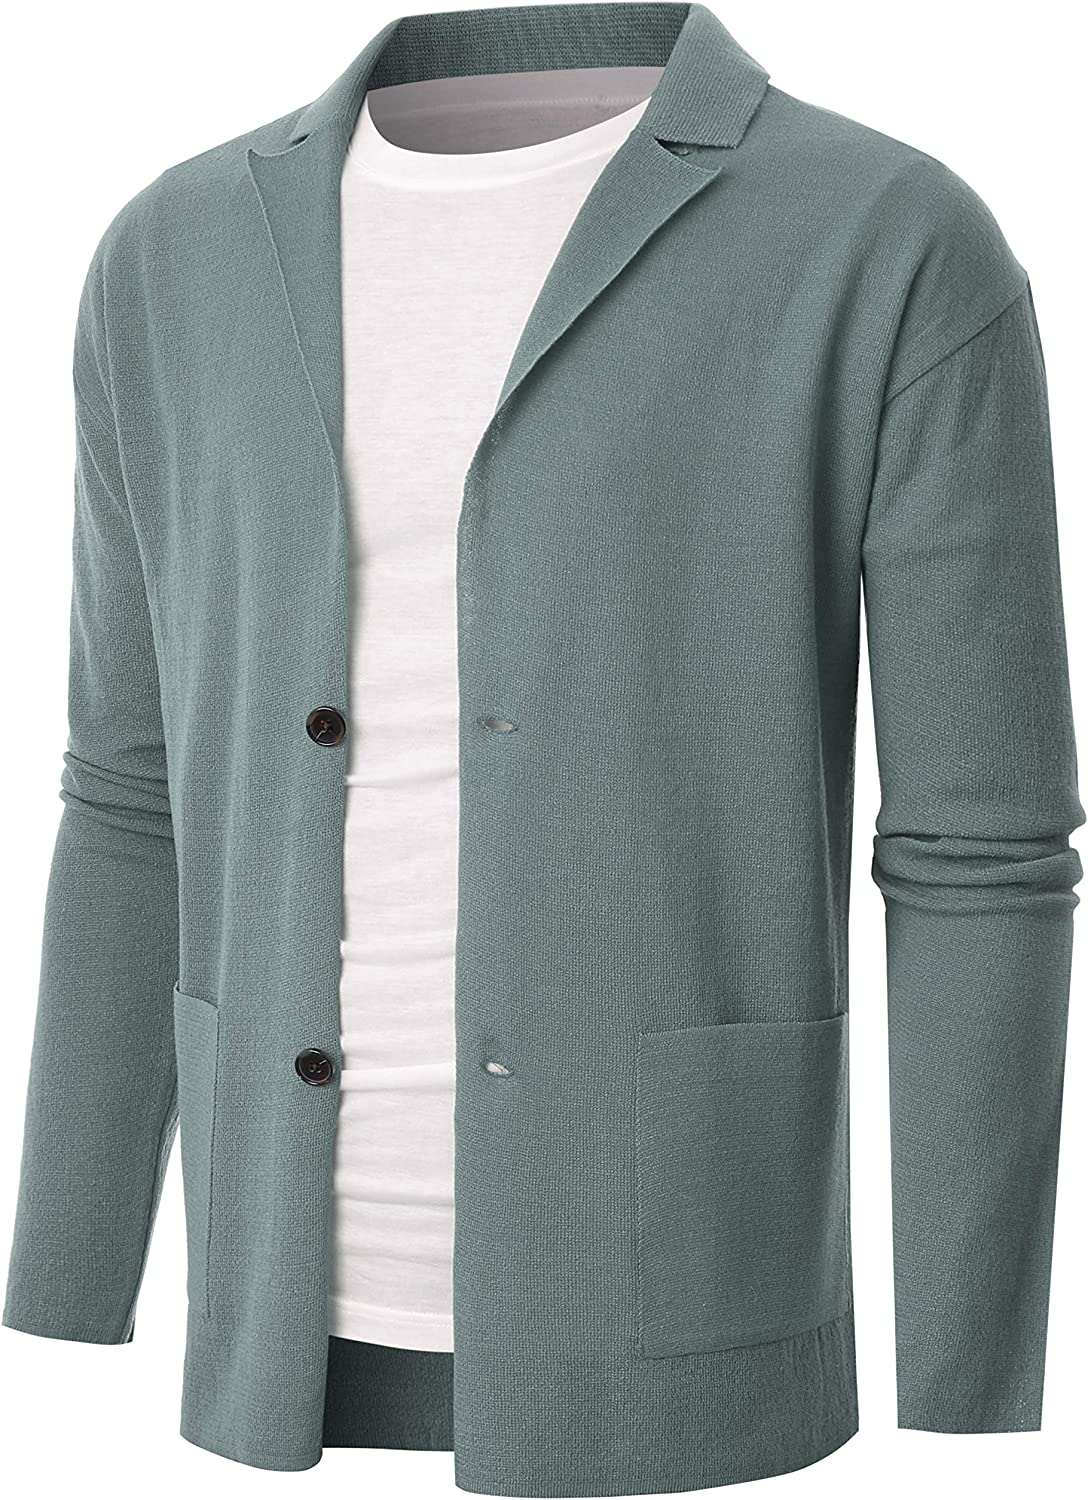 OHOO Mens Long Sleeve Two Button Linen Natural Style Cardigan